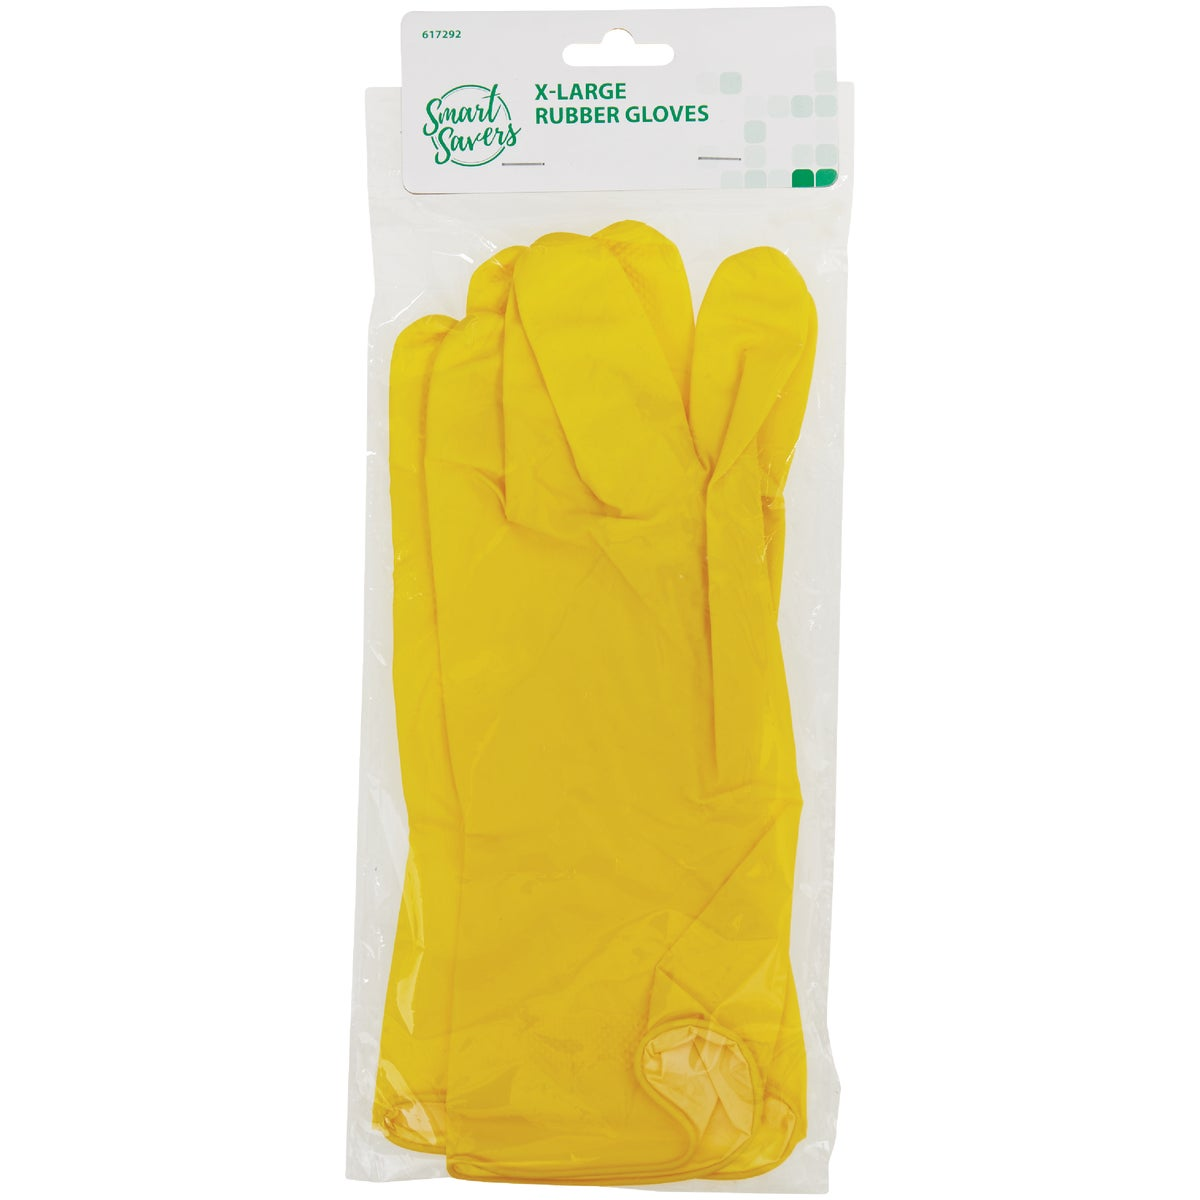 X-LARGE KITCHEN GLOVES - CC301030 by Do it Best